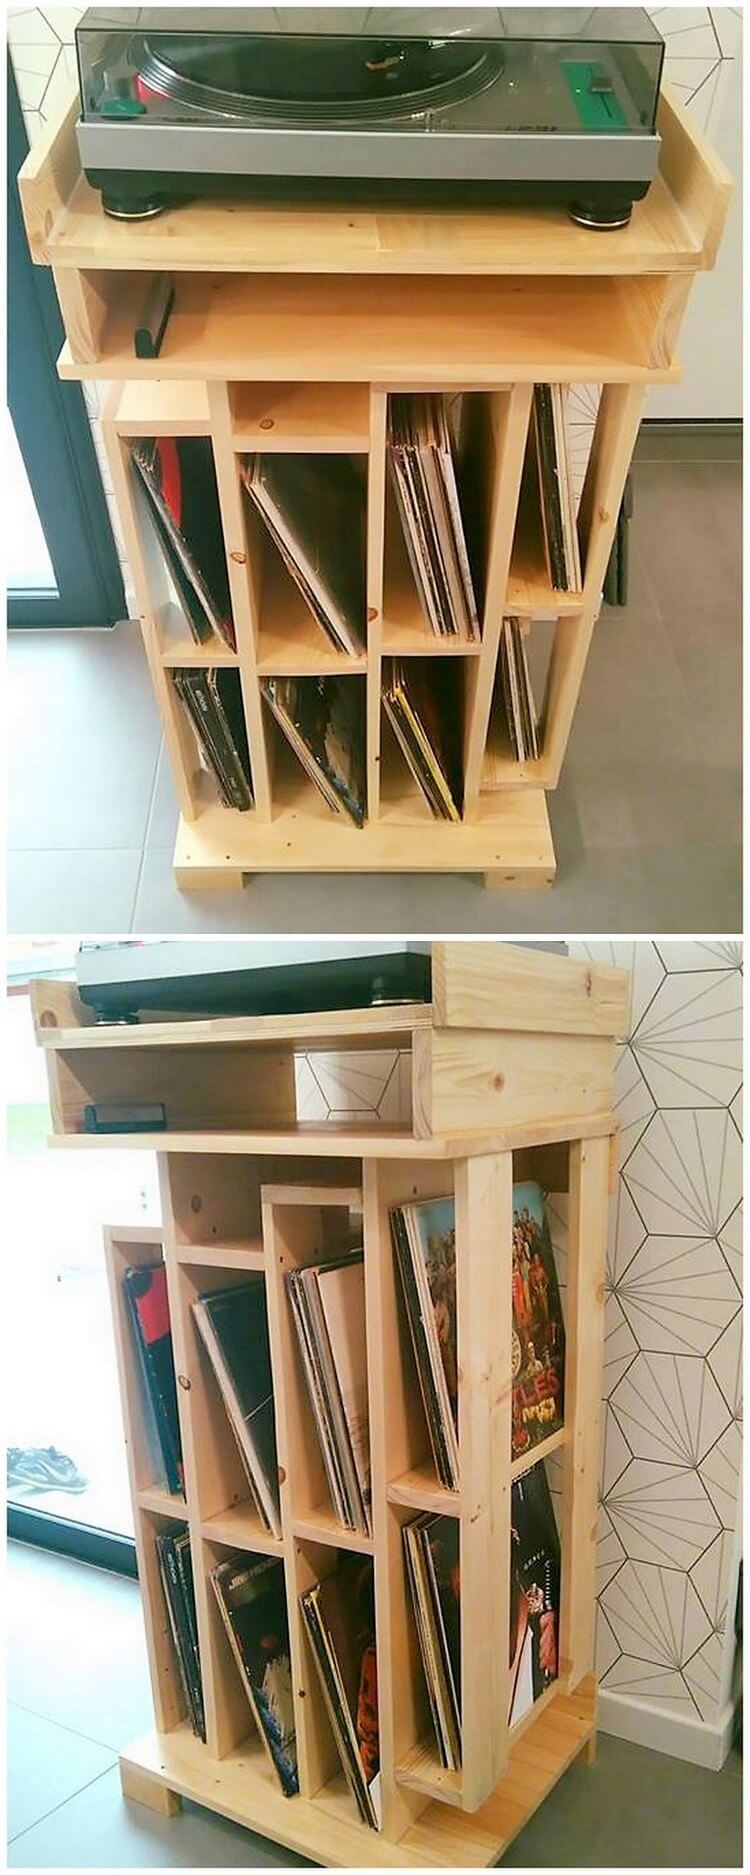 Pallet Books Shelving Unit (2)